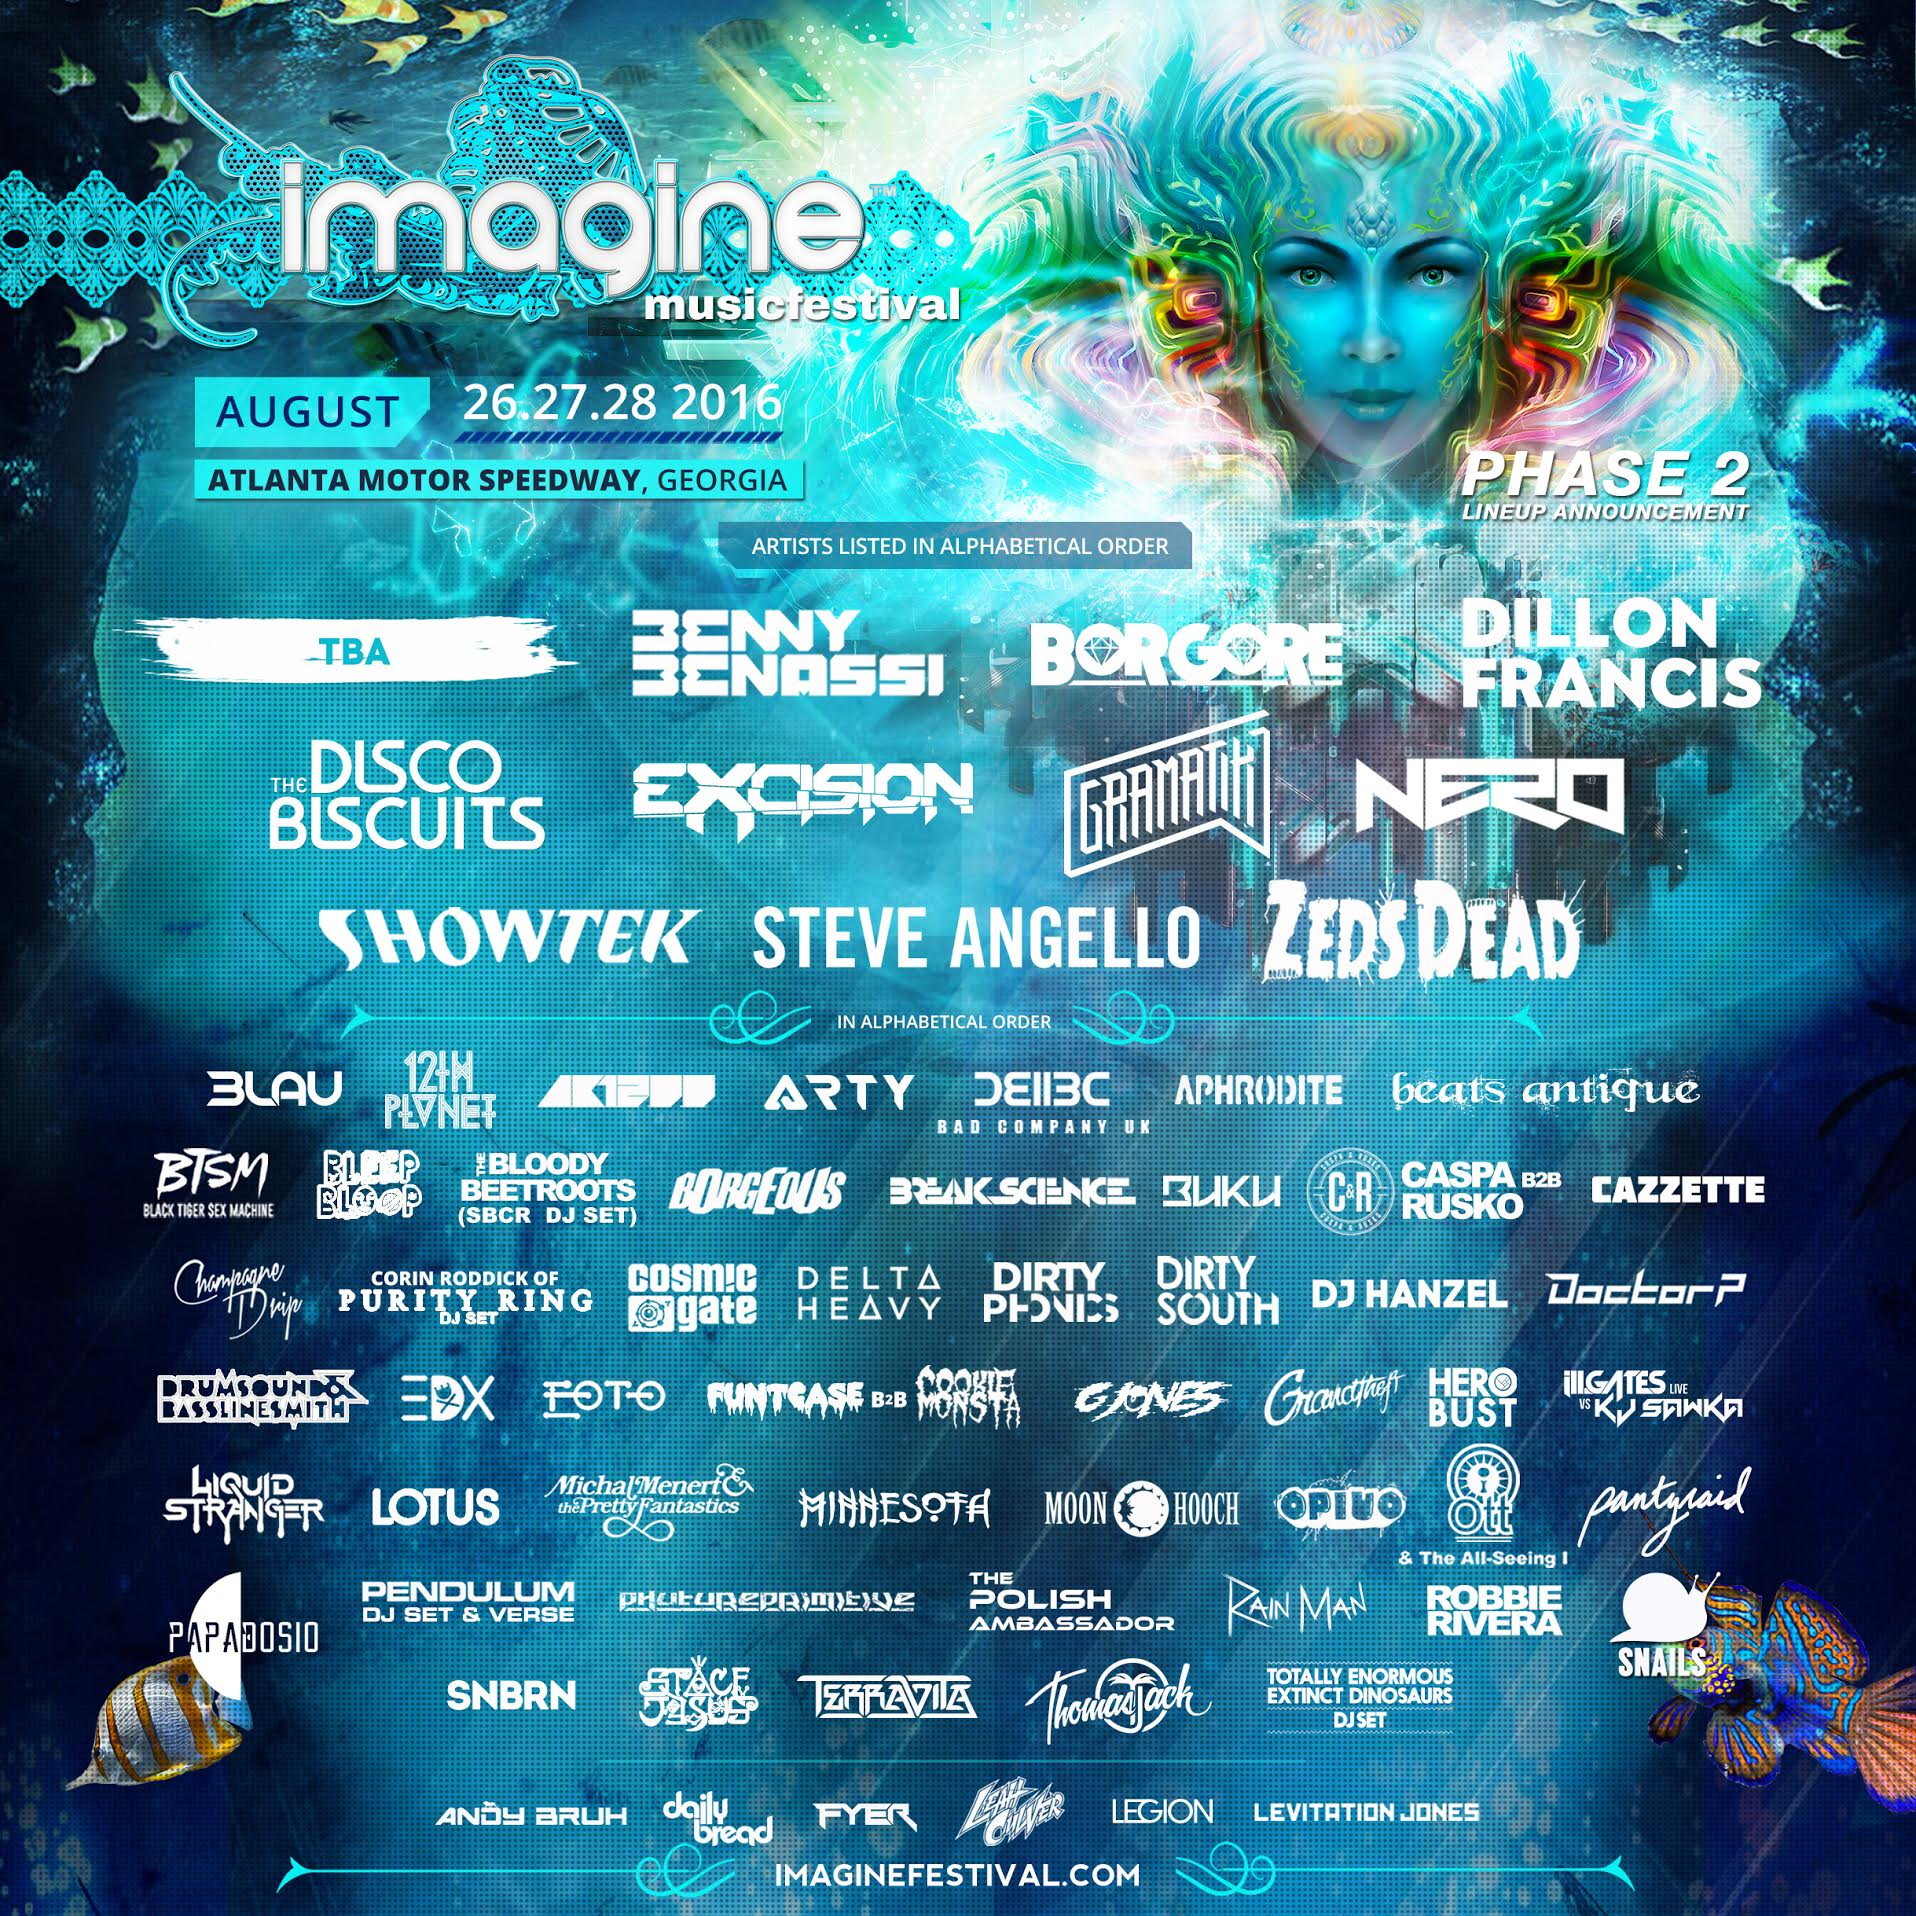 Phase 2 Lineup Poster